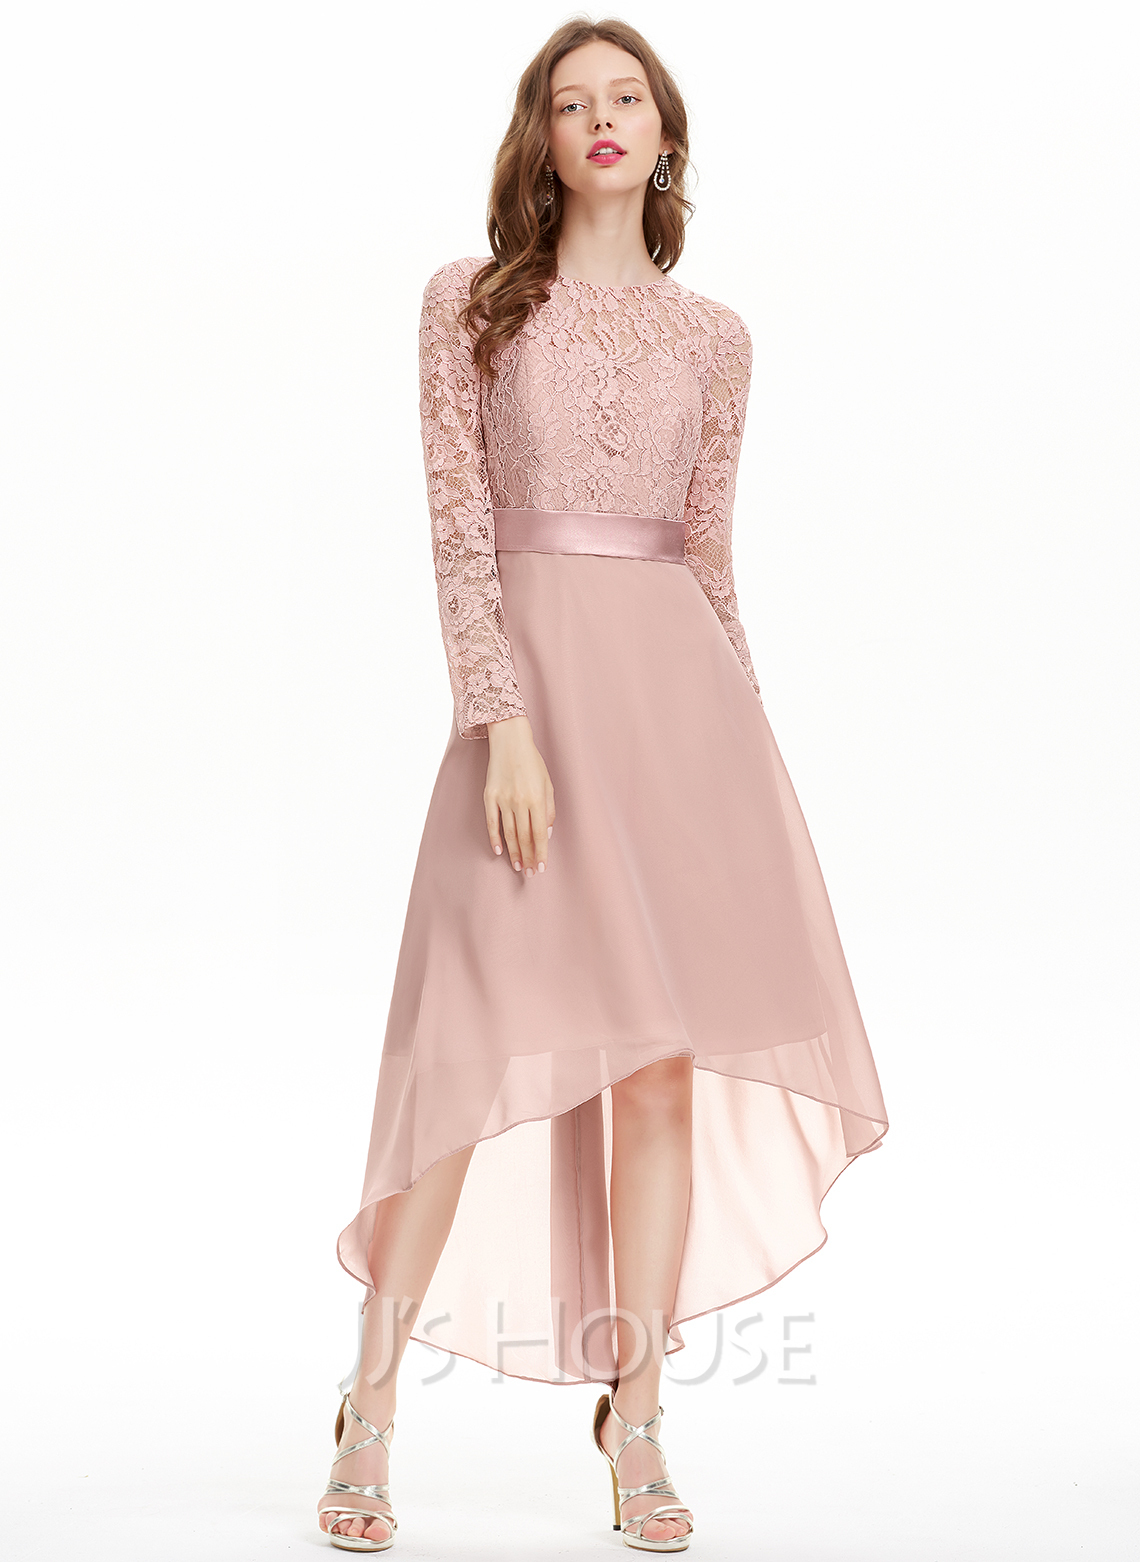 A-Line Scoop Neck Asymmetrical Chiffon Homecoming Dress With Bow(s)